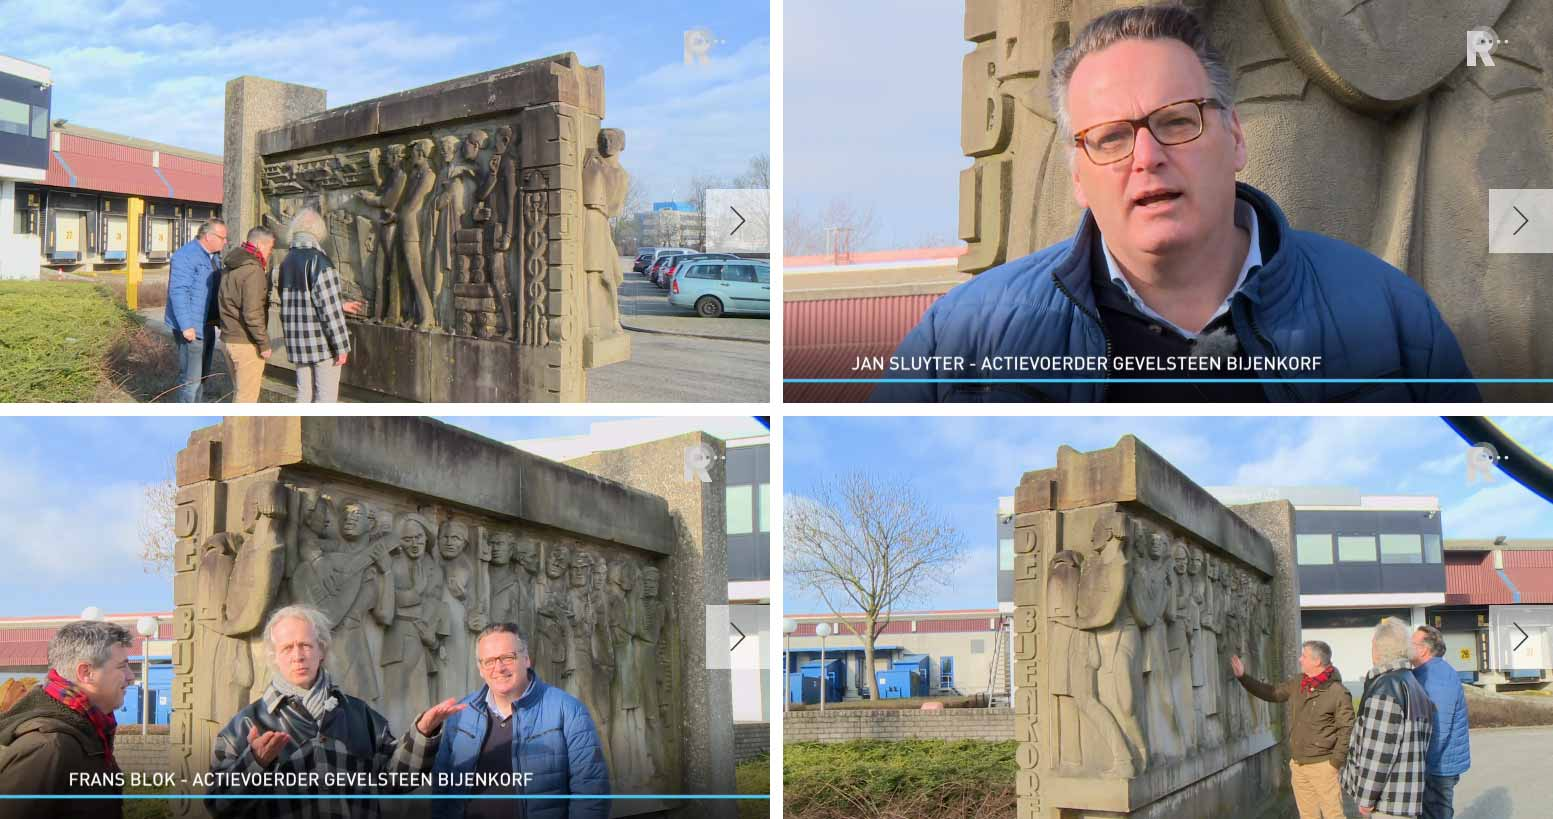 Screenshots of the interview by RTV Rijnmond with the campaigners for the return of the facade sculpture of the old Bijenkorf to Rotterdam